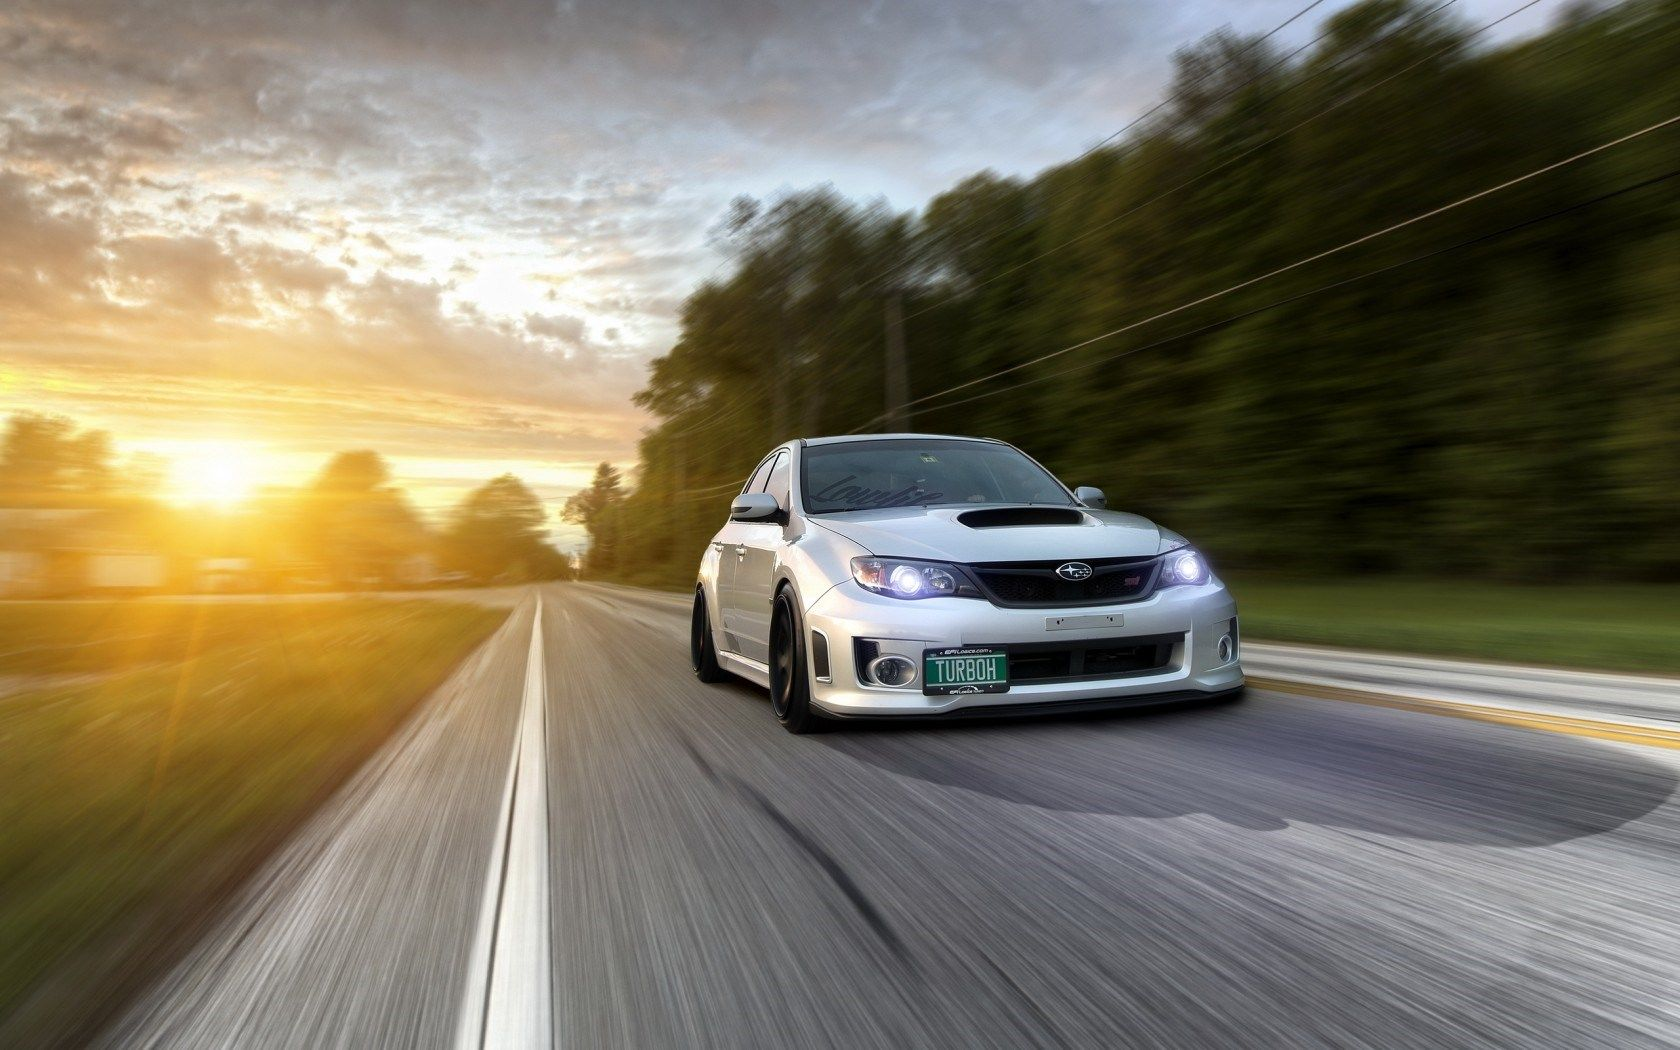 View download comment and rate this 1680x1050 Subaru Impreza 1680x1050